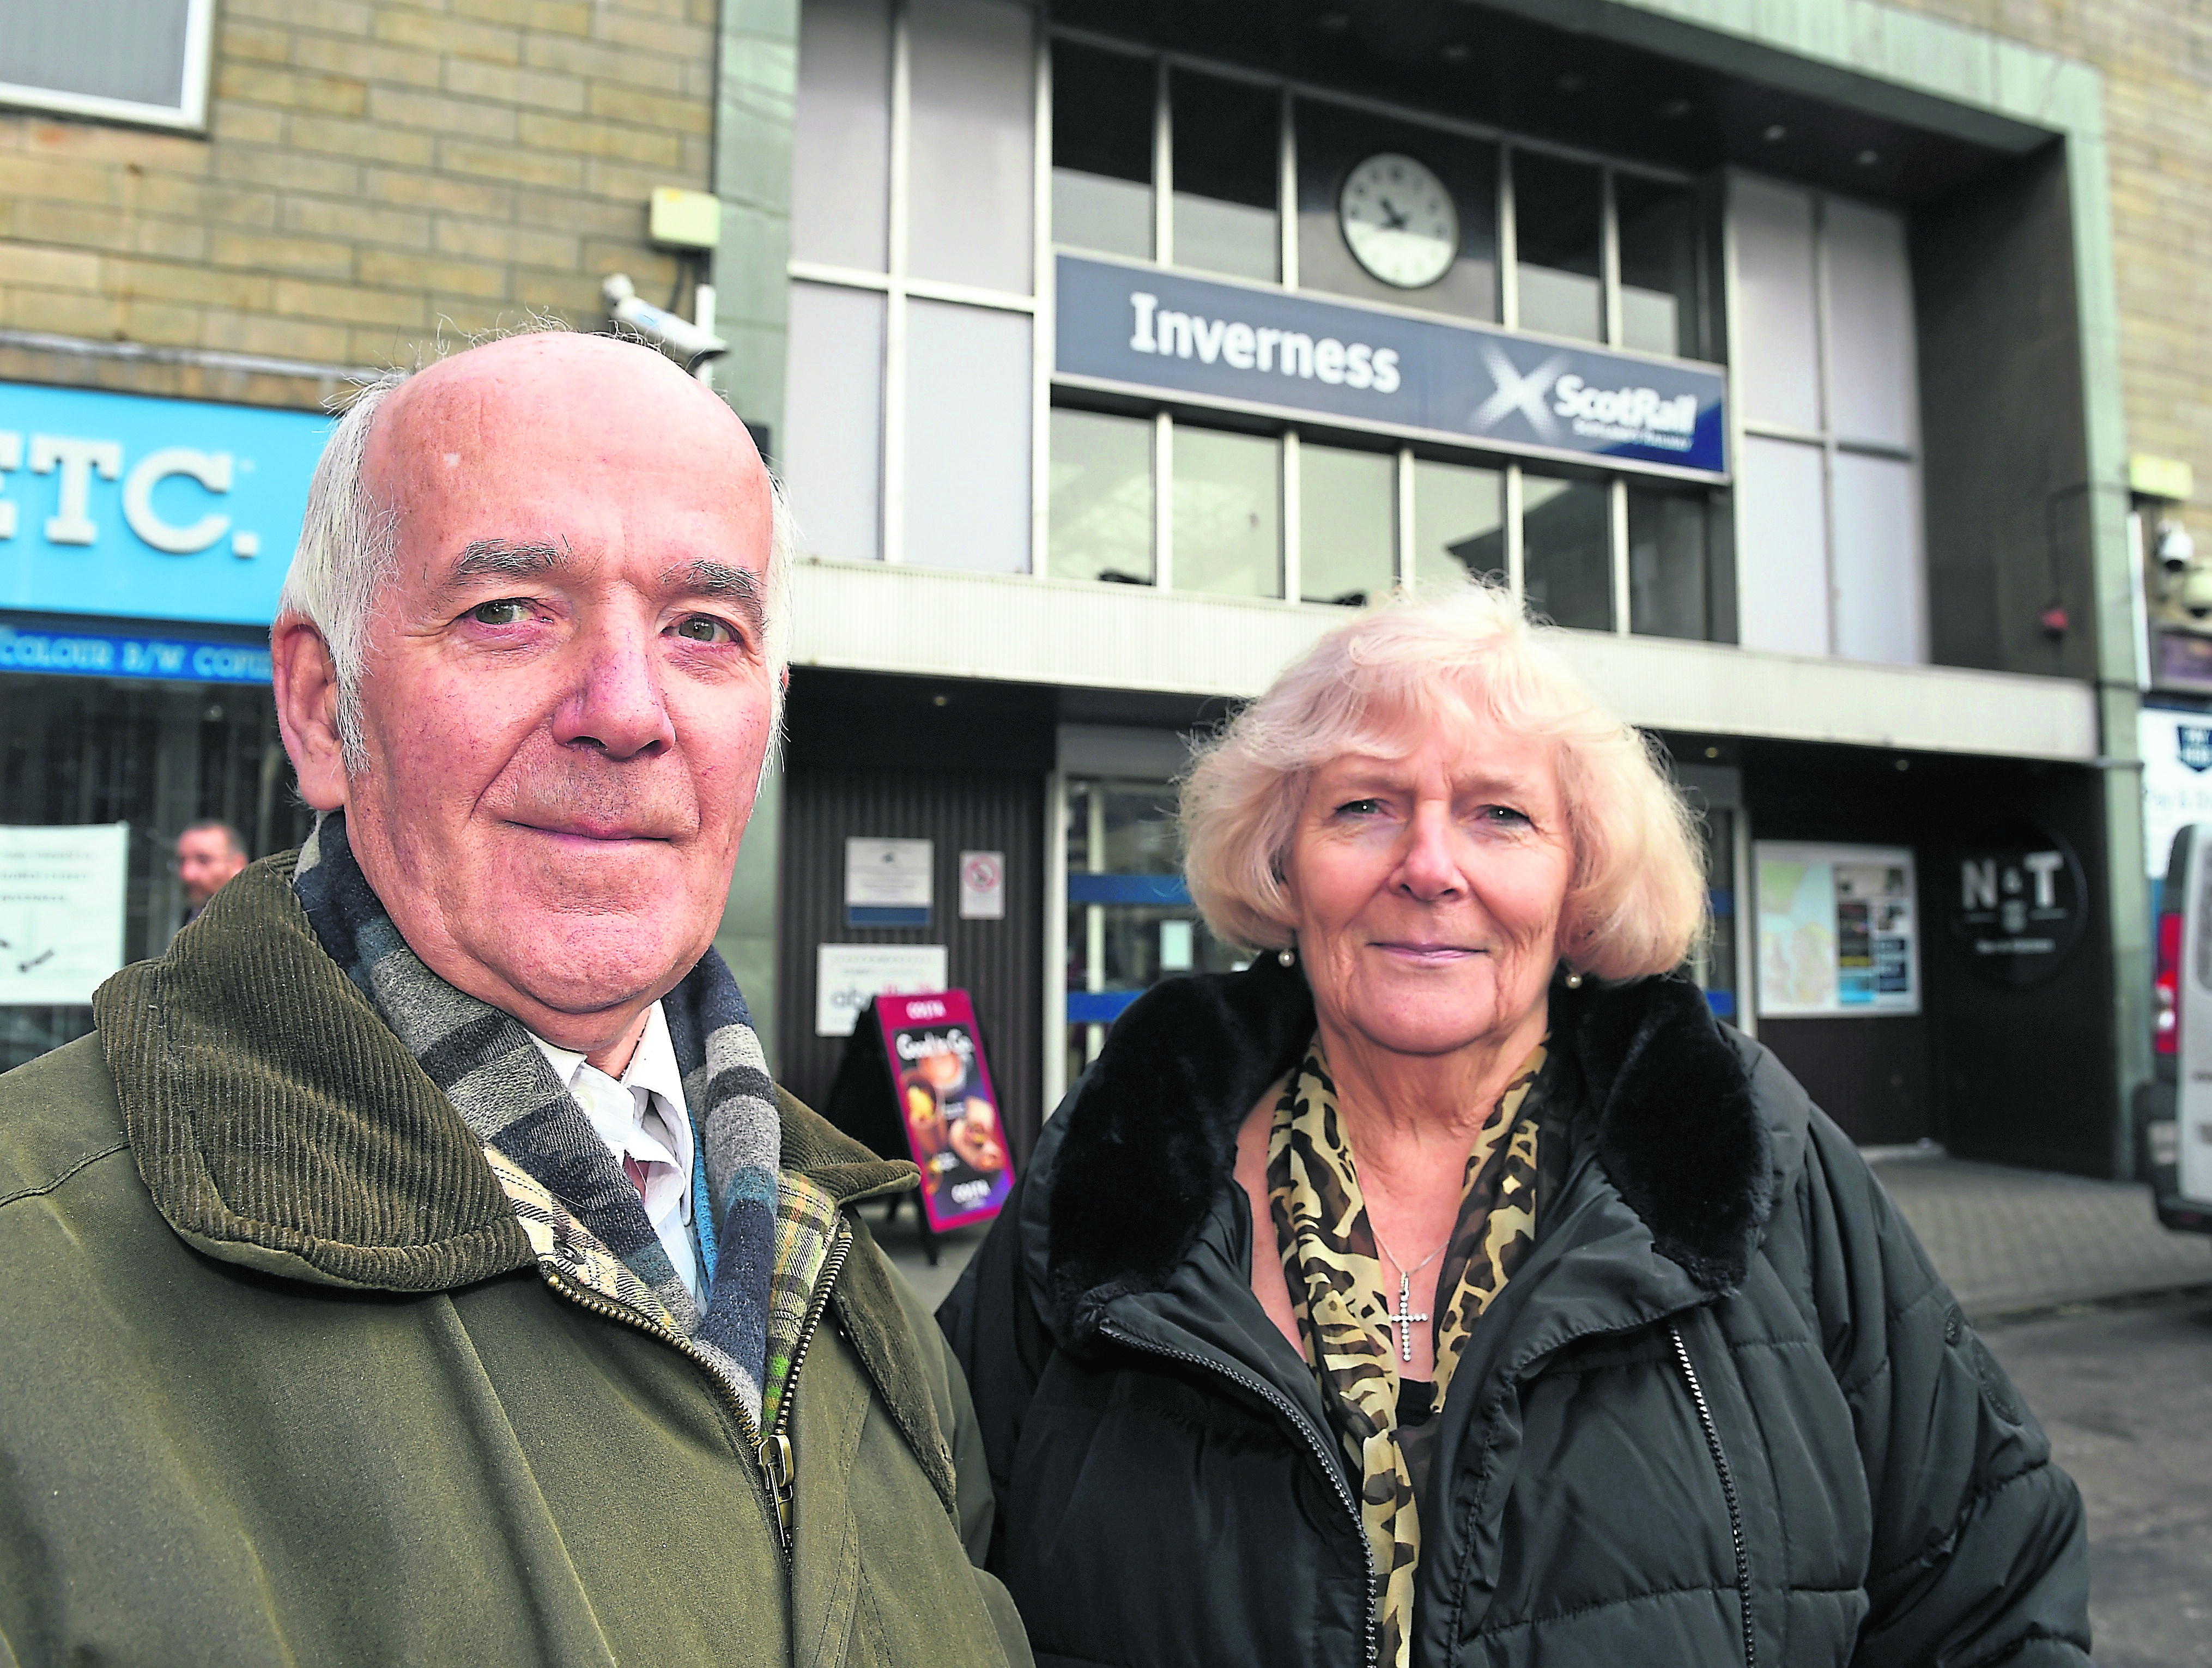 Train distruption on the Perth to Inverness railway line following  track damage near Dunkeld. Prospective travellers Vincent Holligan with his wife Evelyn from Edinburgh, stranded at Inverness Railway Station. Picture by Sandy McCook.